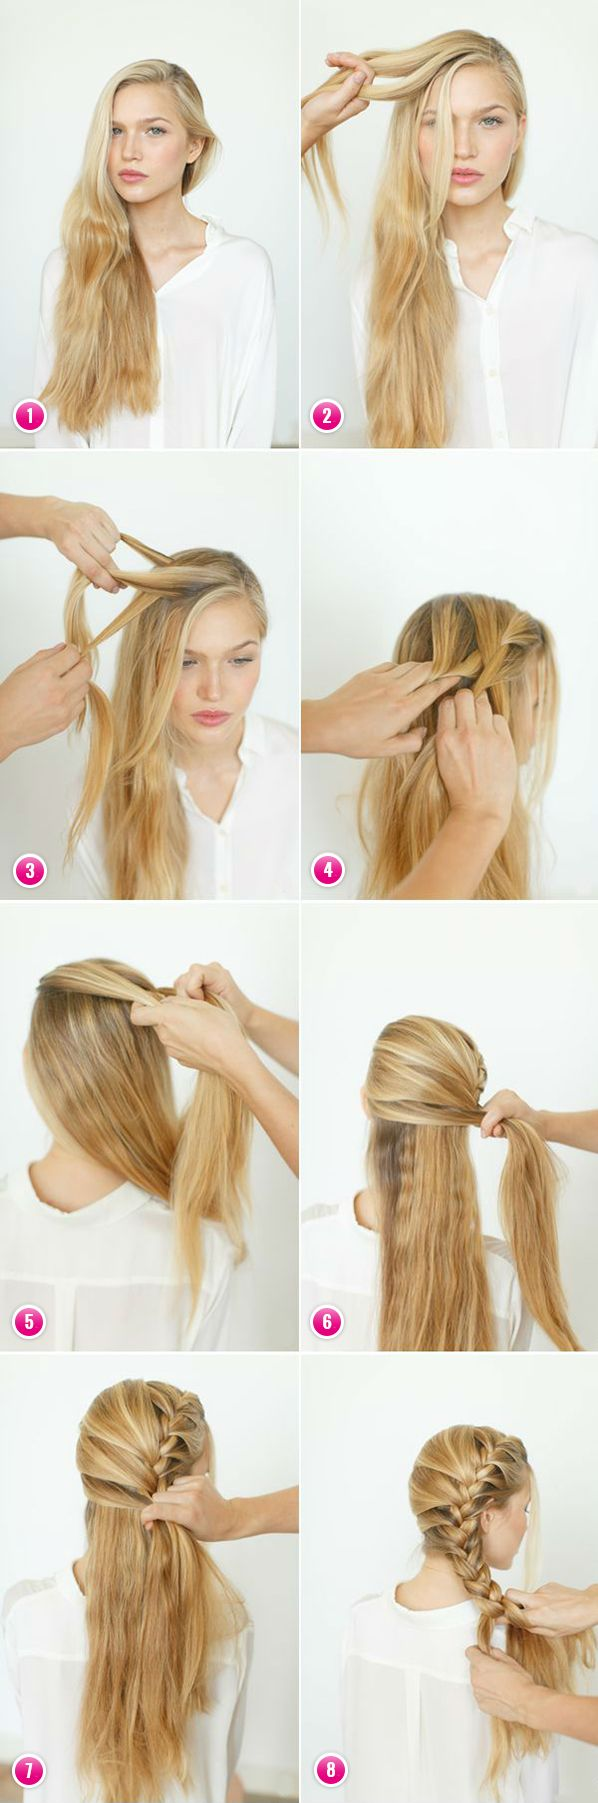 20 easy hairstyles for women who've got no time, #7 is a game